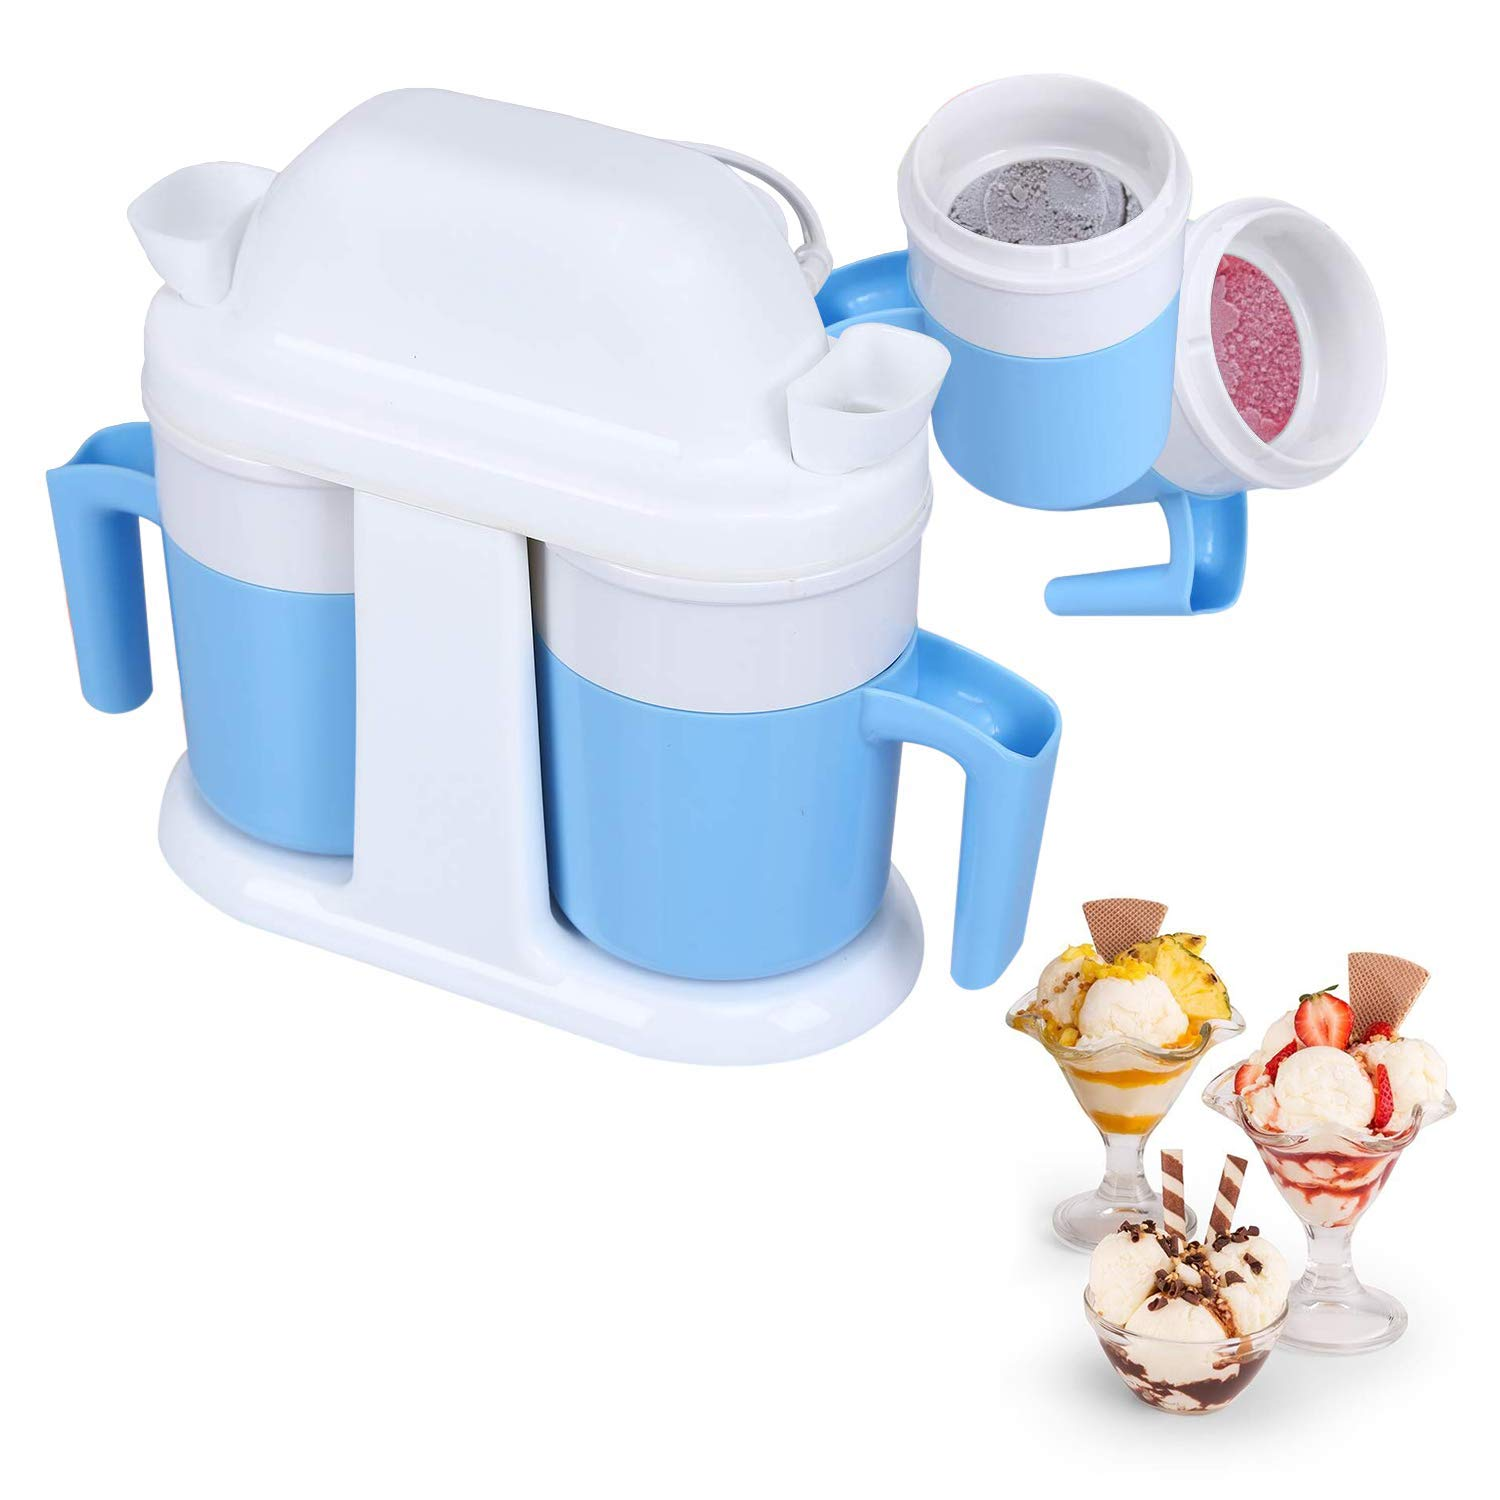 Webat Ice Cream Maker, Double Bowls Homemade Ice Cream Frozen Yogurt Sorbet Machine with Timer Function Double Bowls Mixing Paddles-0.86 Pints, Blue